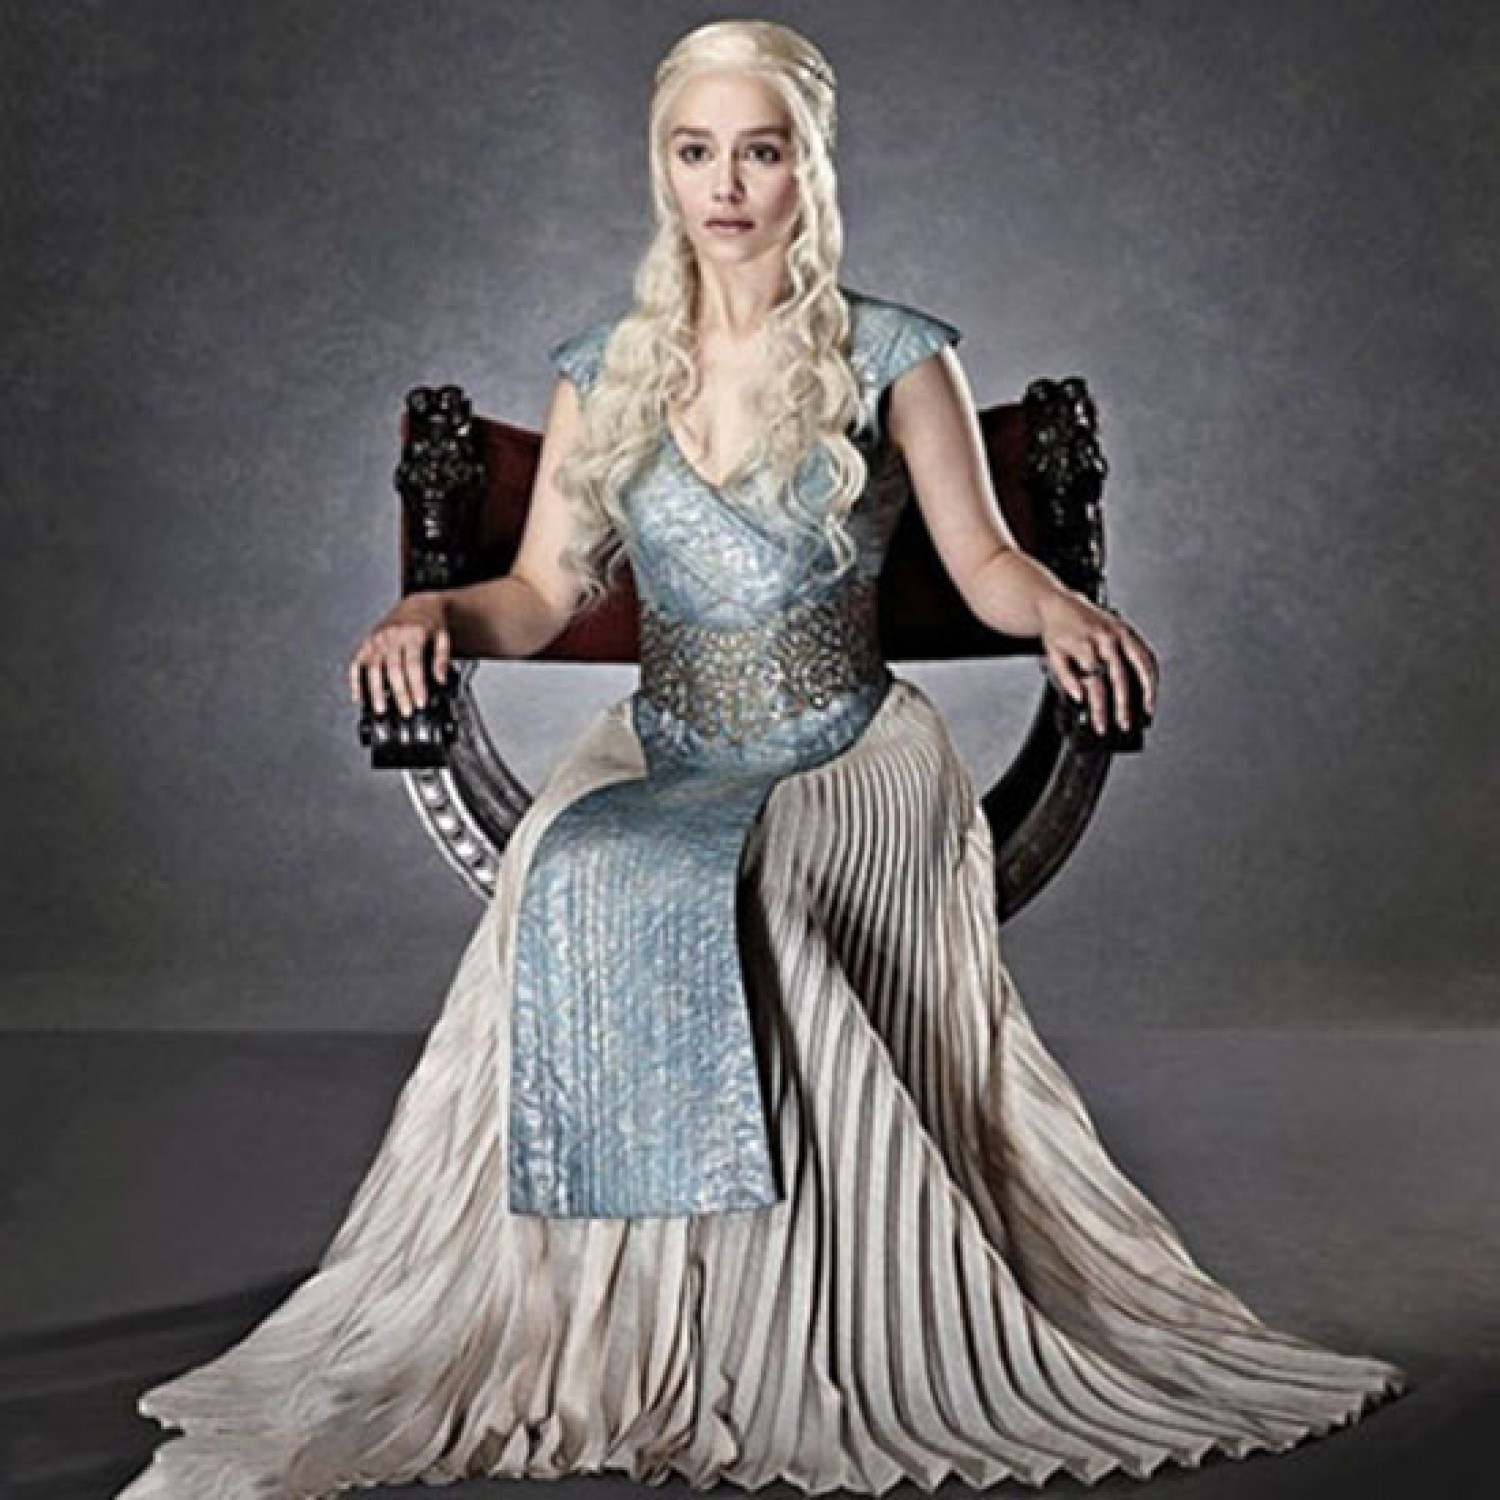 Game Of Thrones Daenerys Targaryen Evening Dresses Halloween Cosplay Costume